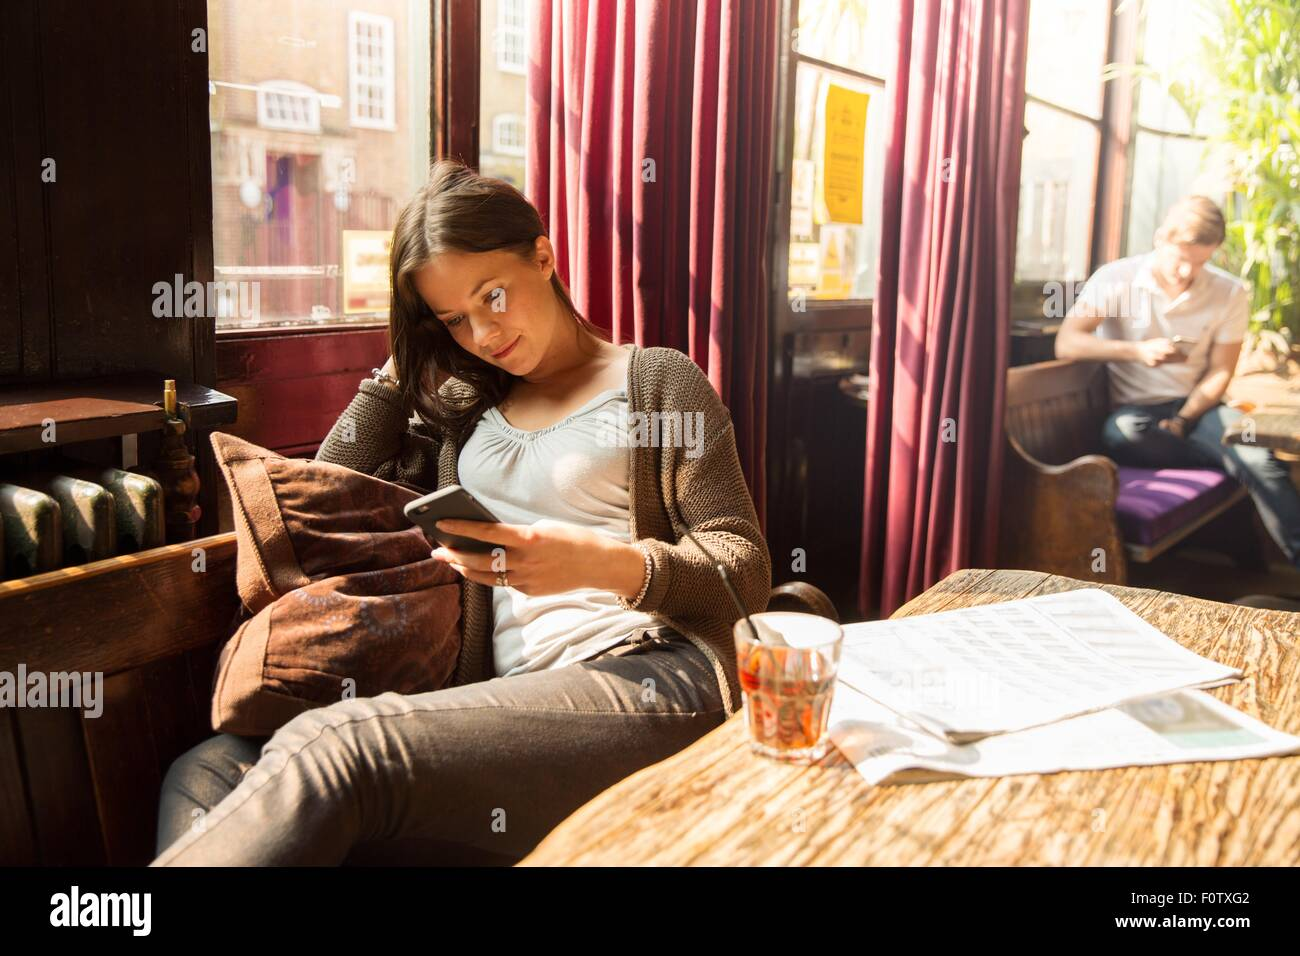 Mid adult woman sitting looking at smartphone - Stock Image